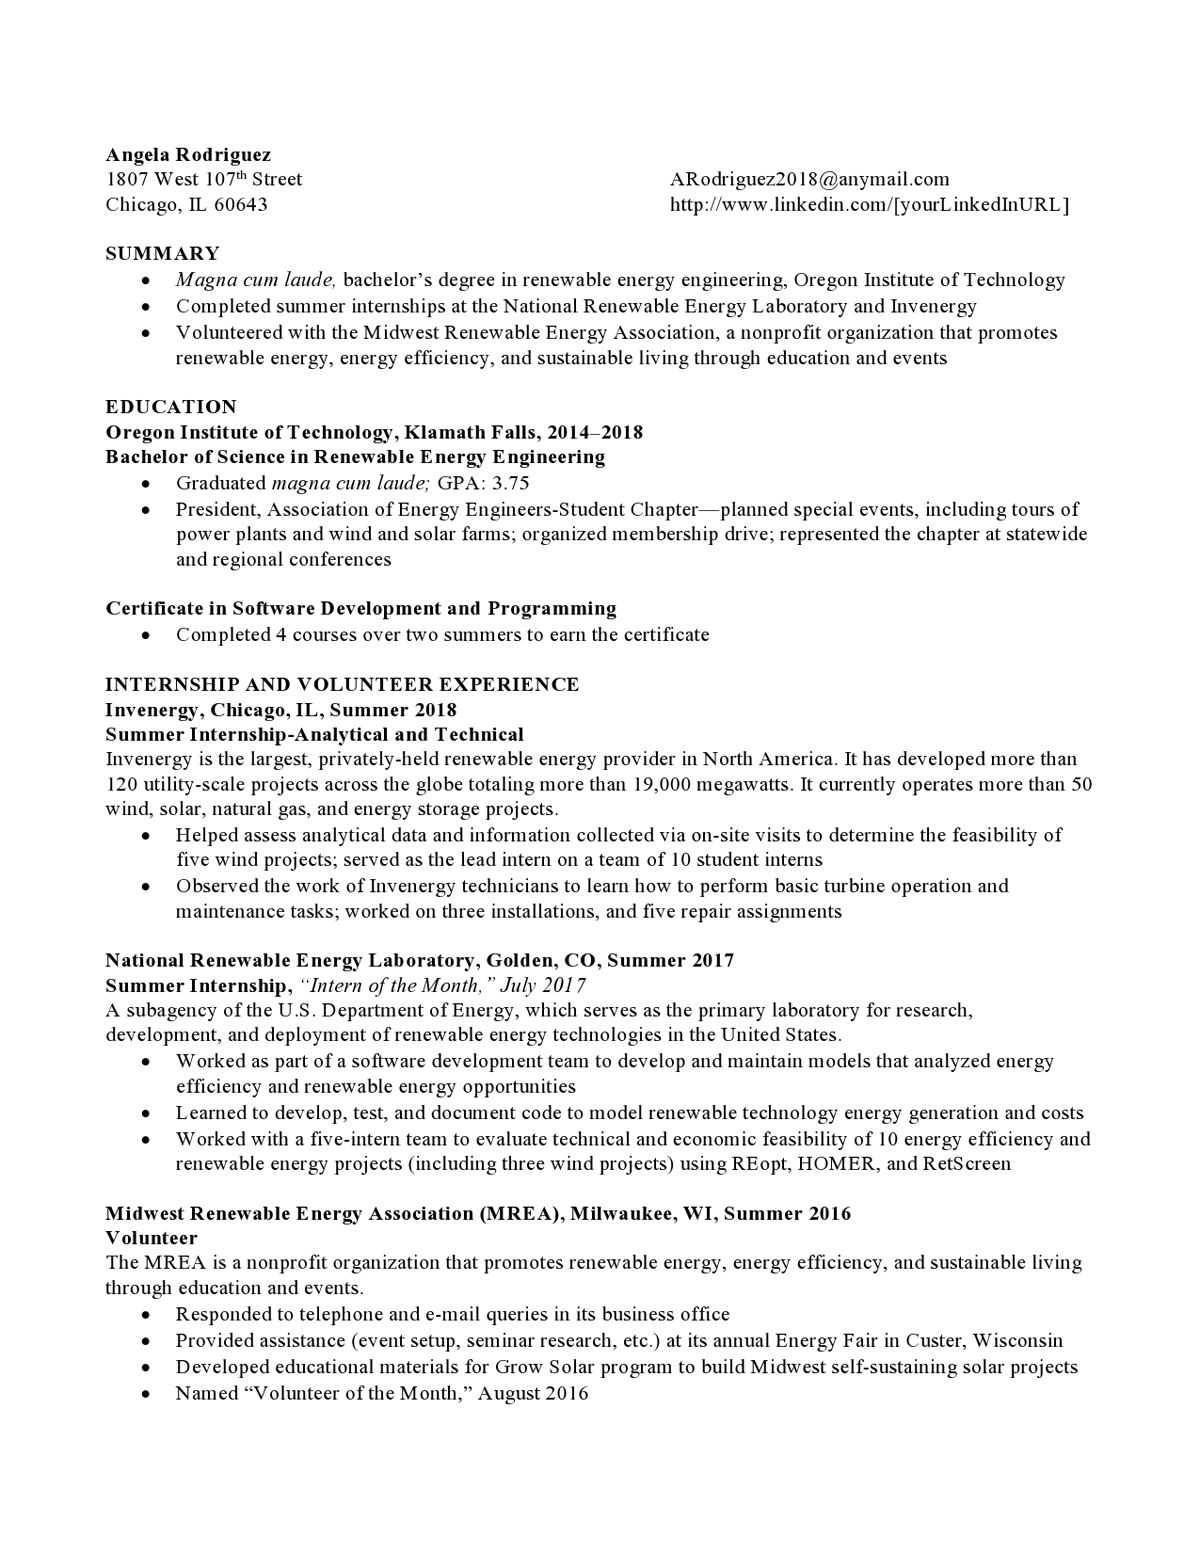 resume samples templates examples vault sample for energy engineer cresfuenergy20 advance Resume Sample Resume For Energy Engineer